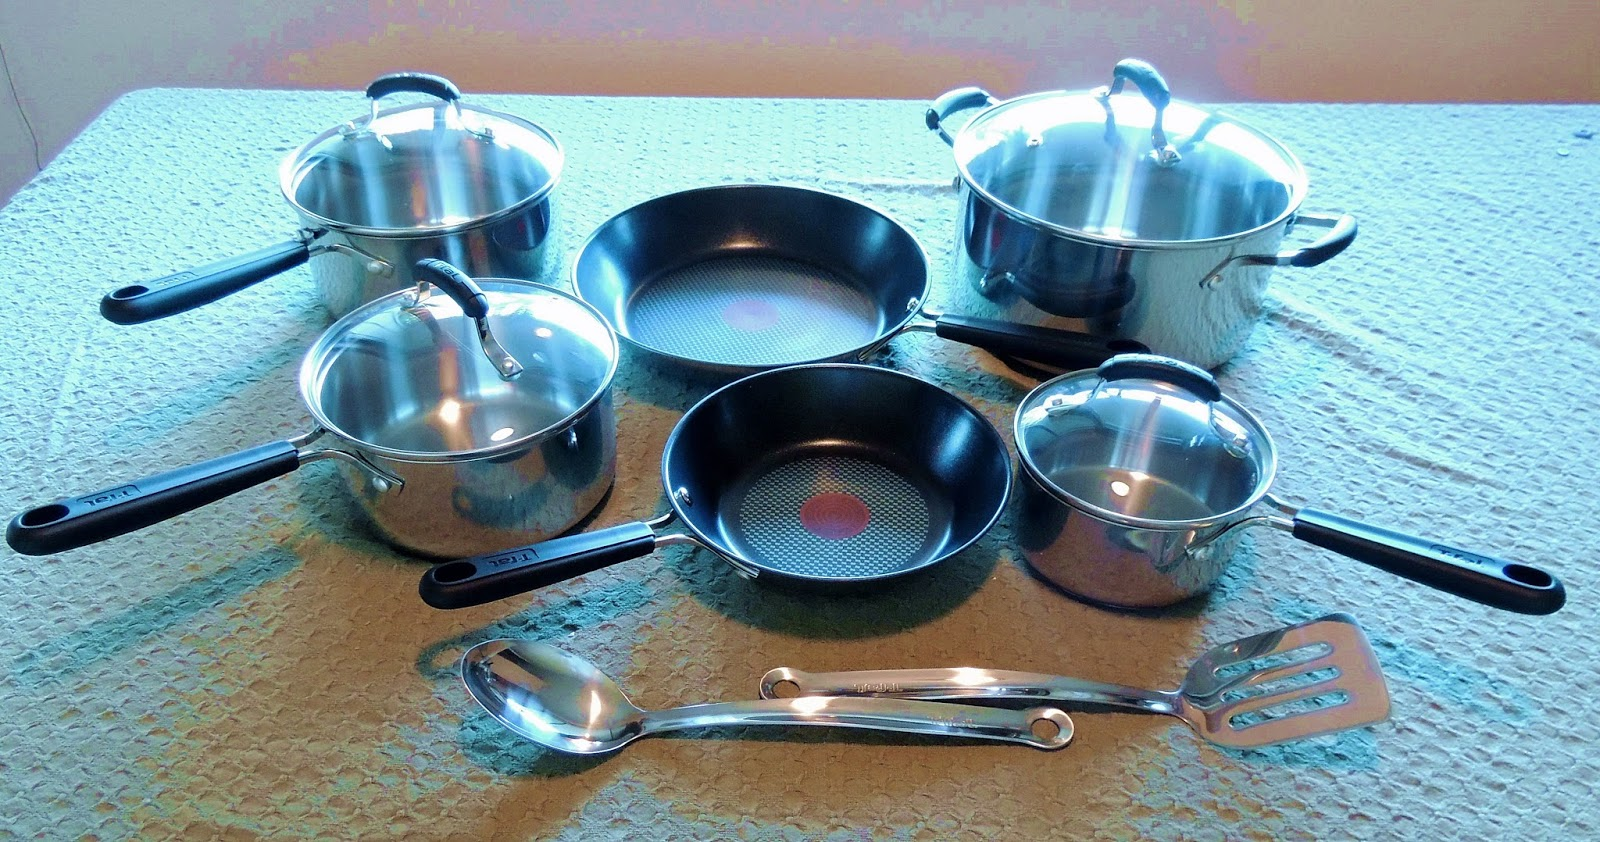 T-fal Stainless Steal and Non-Stick Cookware Review | Bobbi\'s Kozy ...